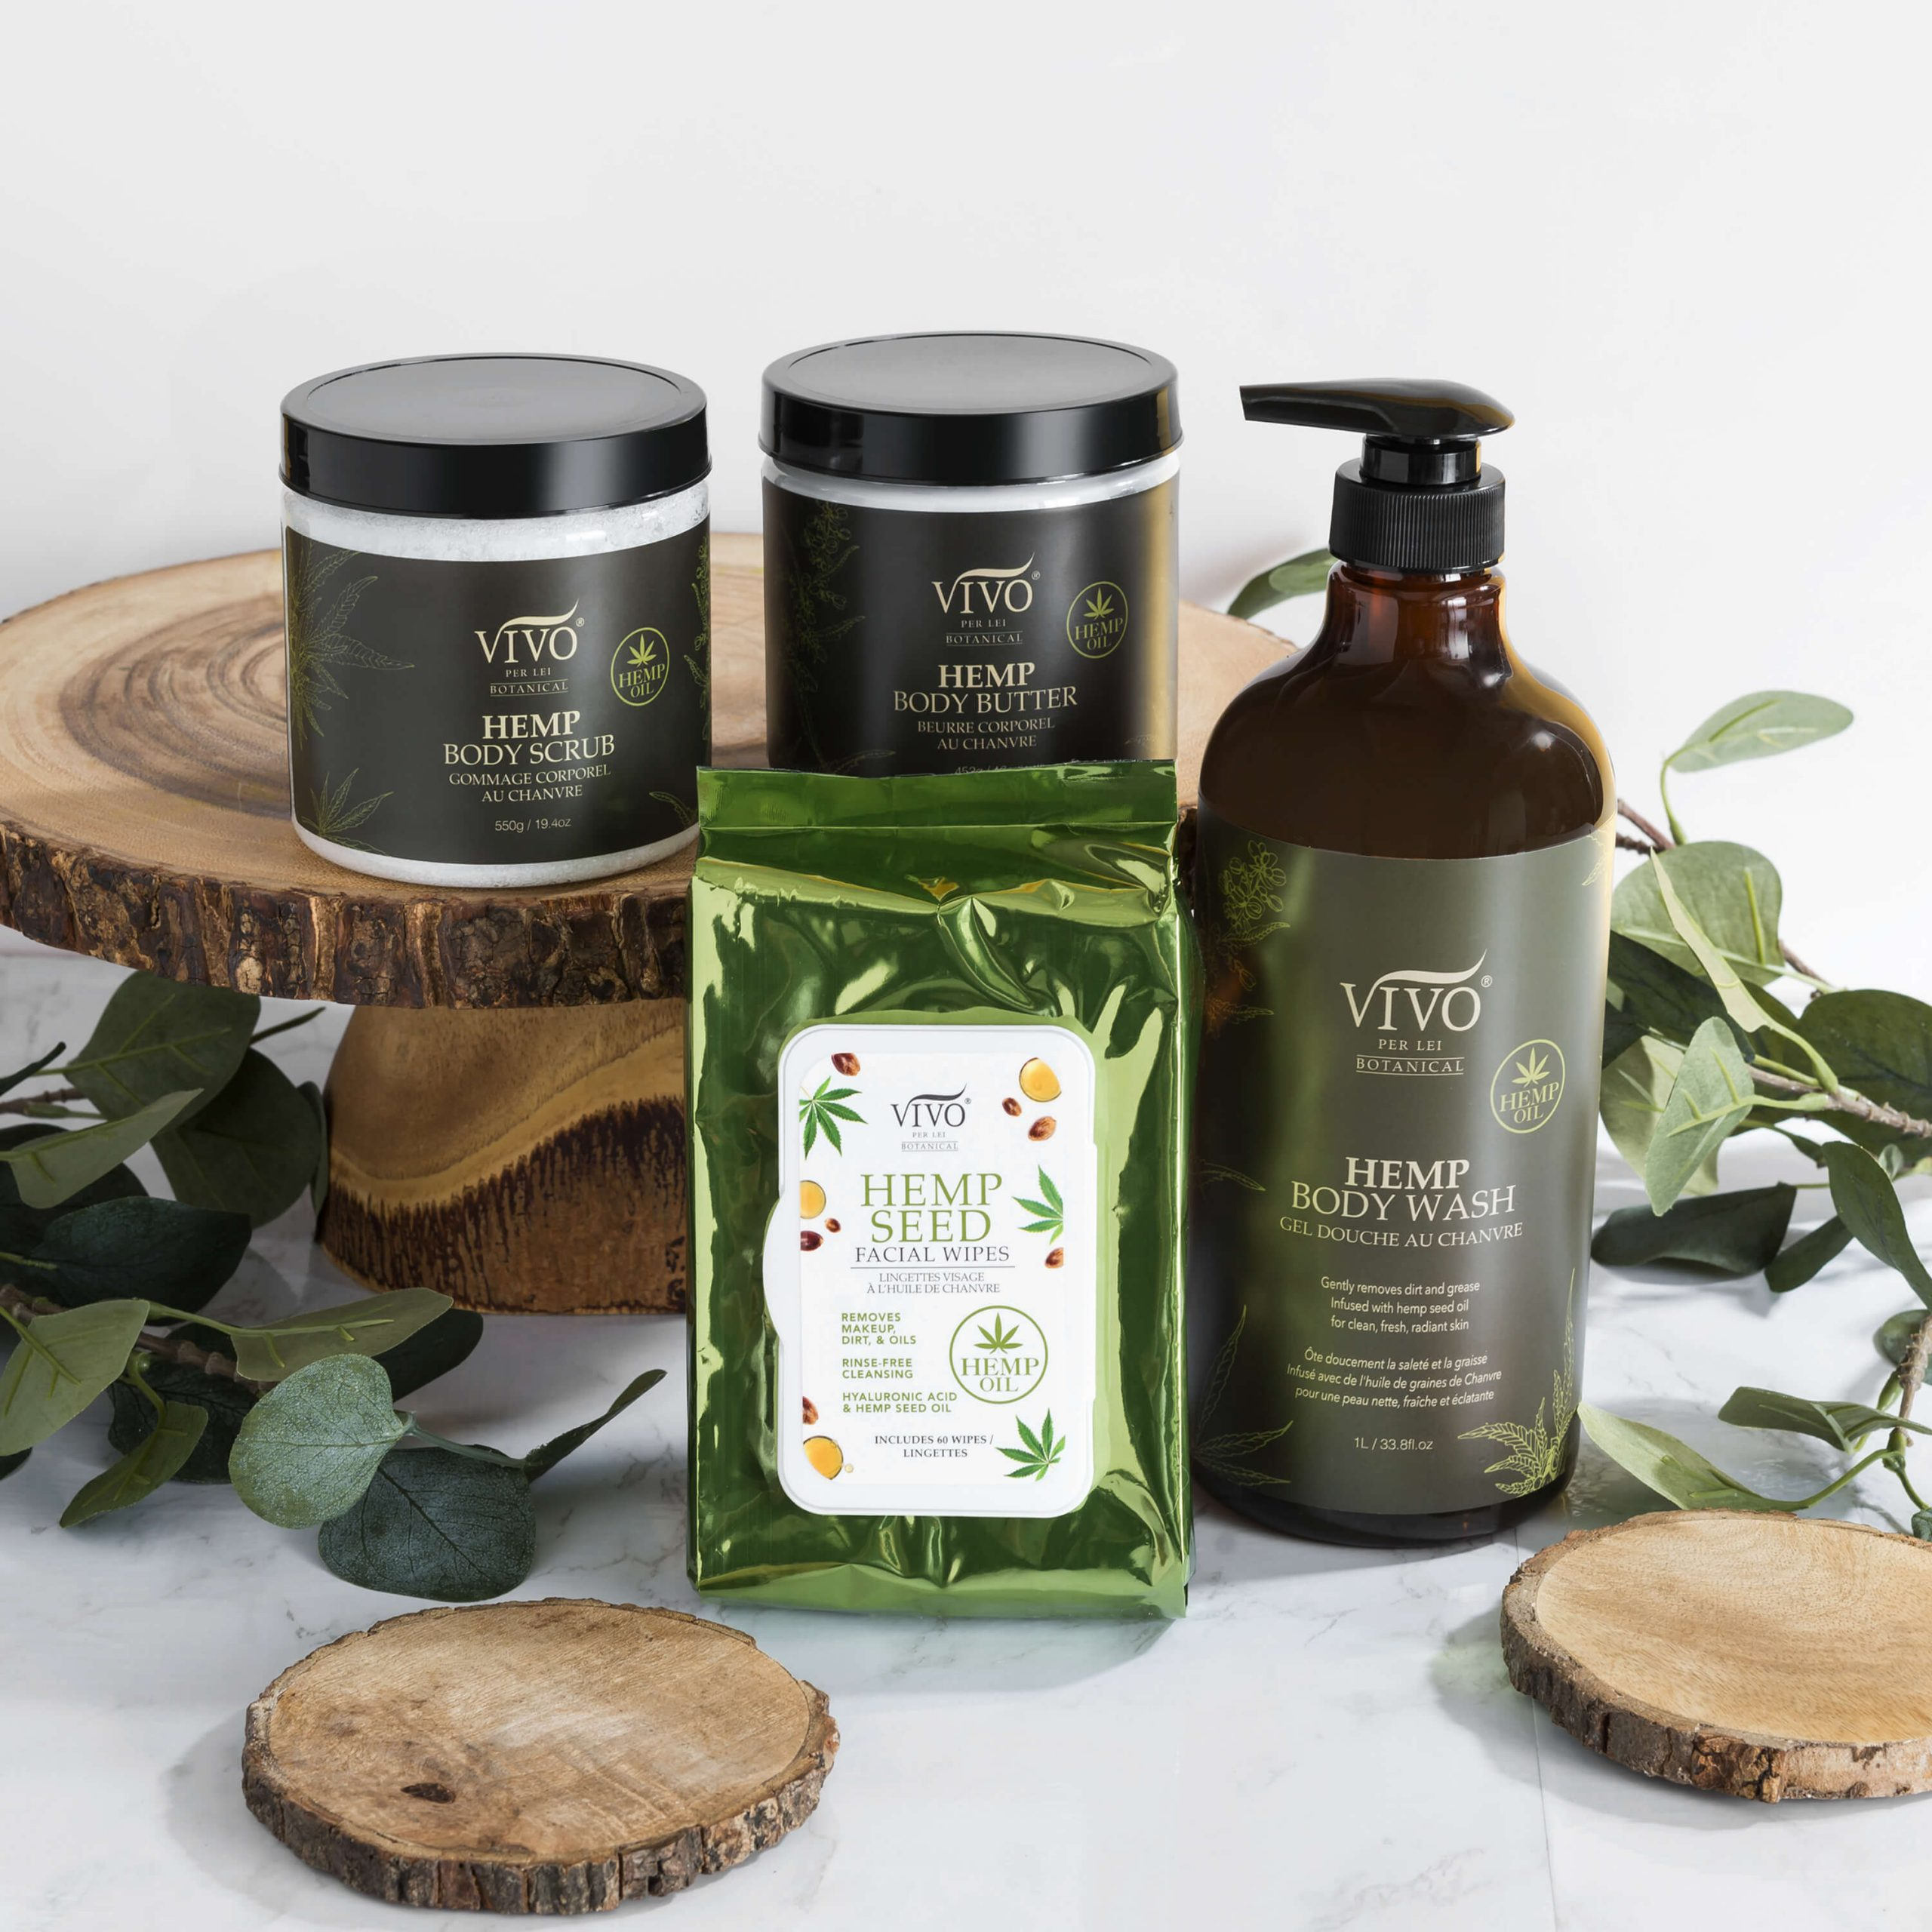 Vivo Body Wash and other hemp products